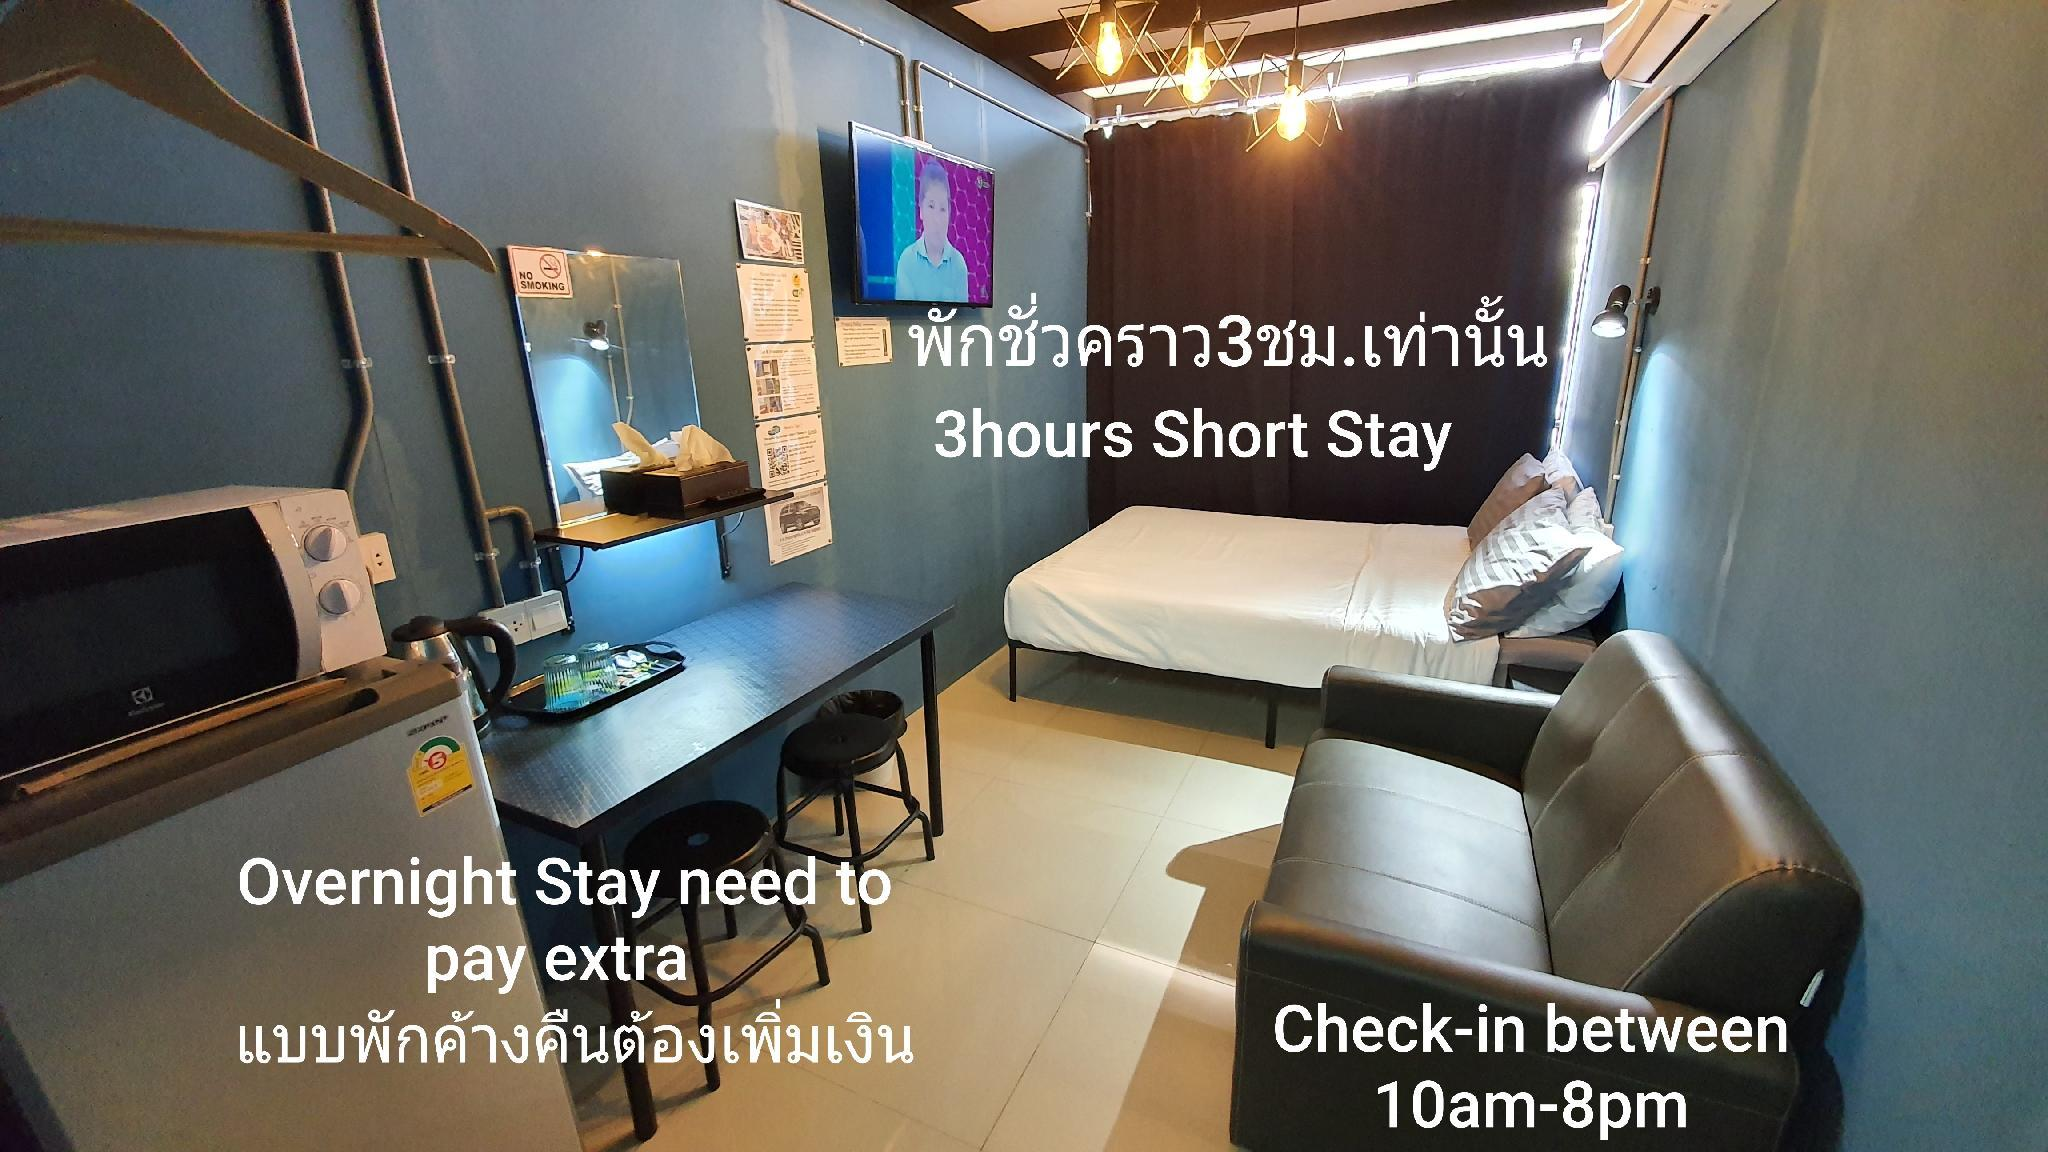 3hours Temporary Short Stay During Between10am 8pm